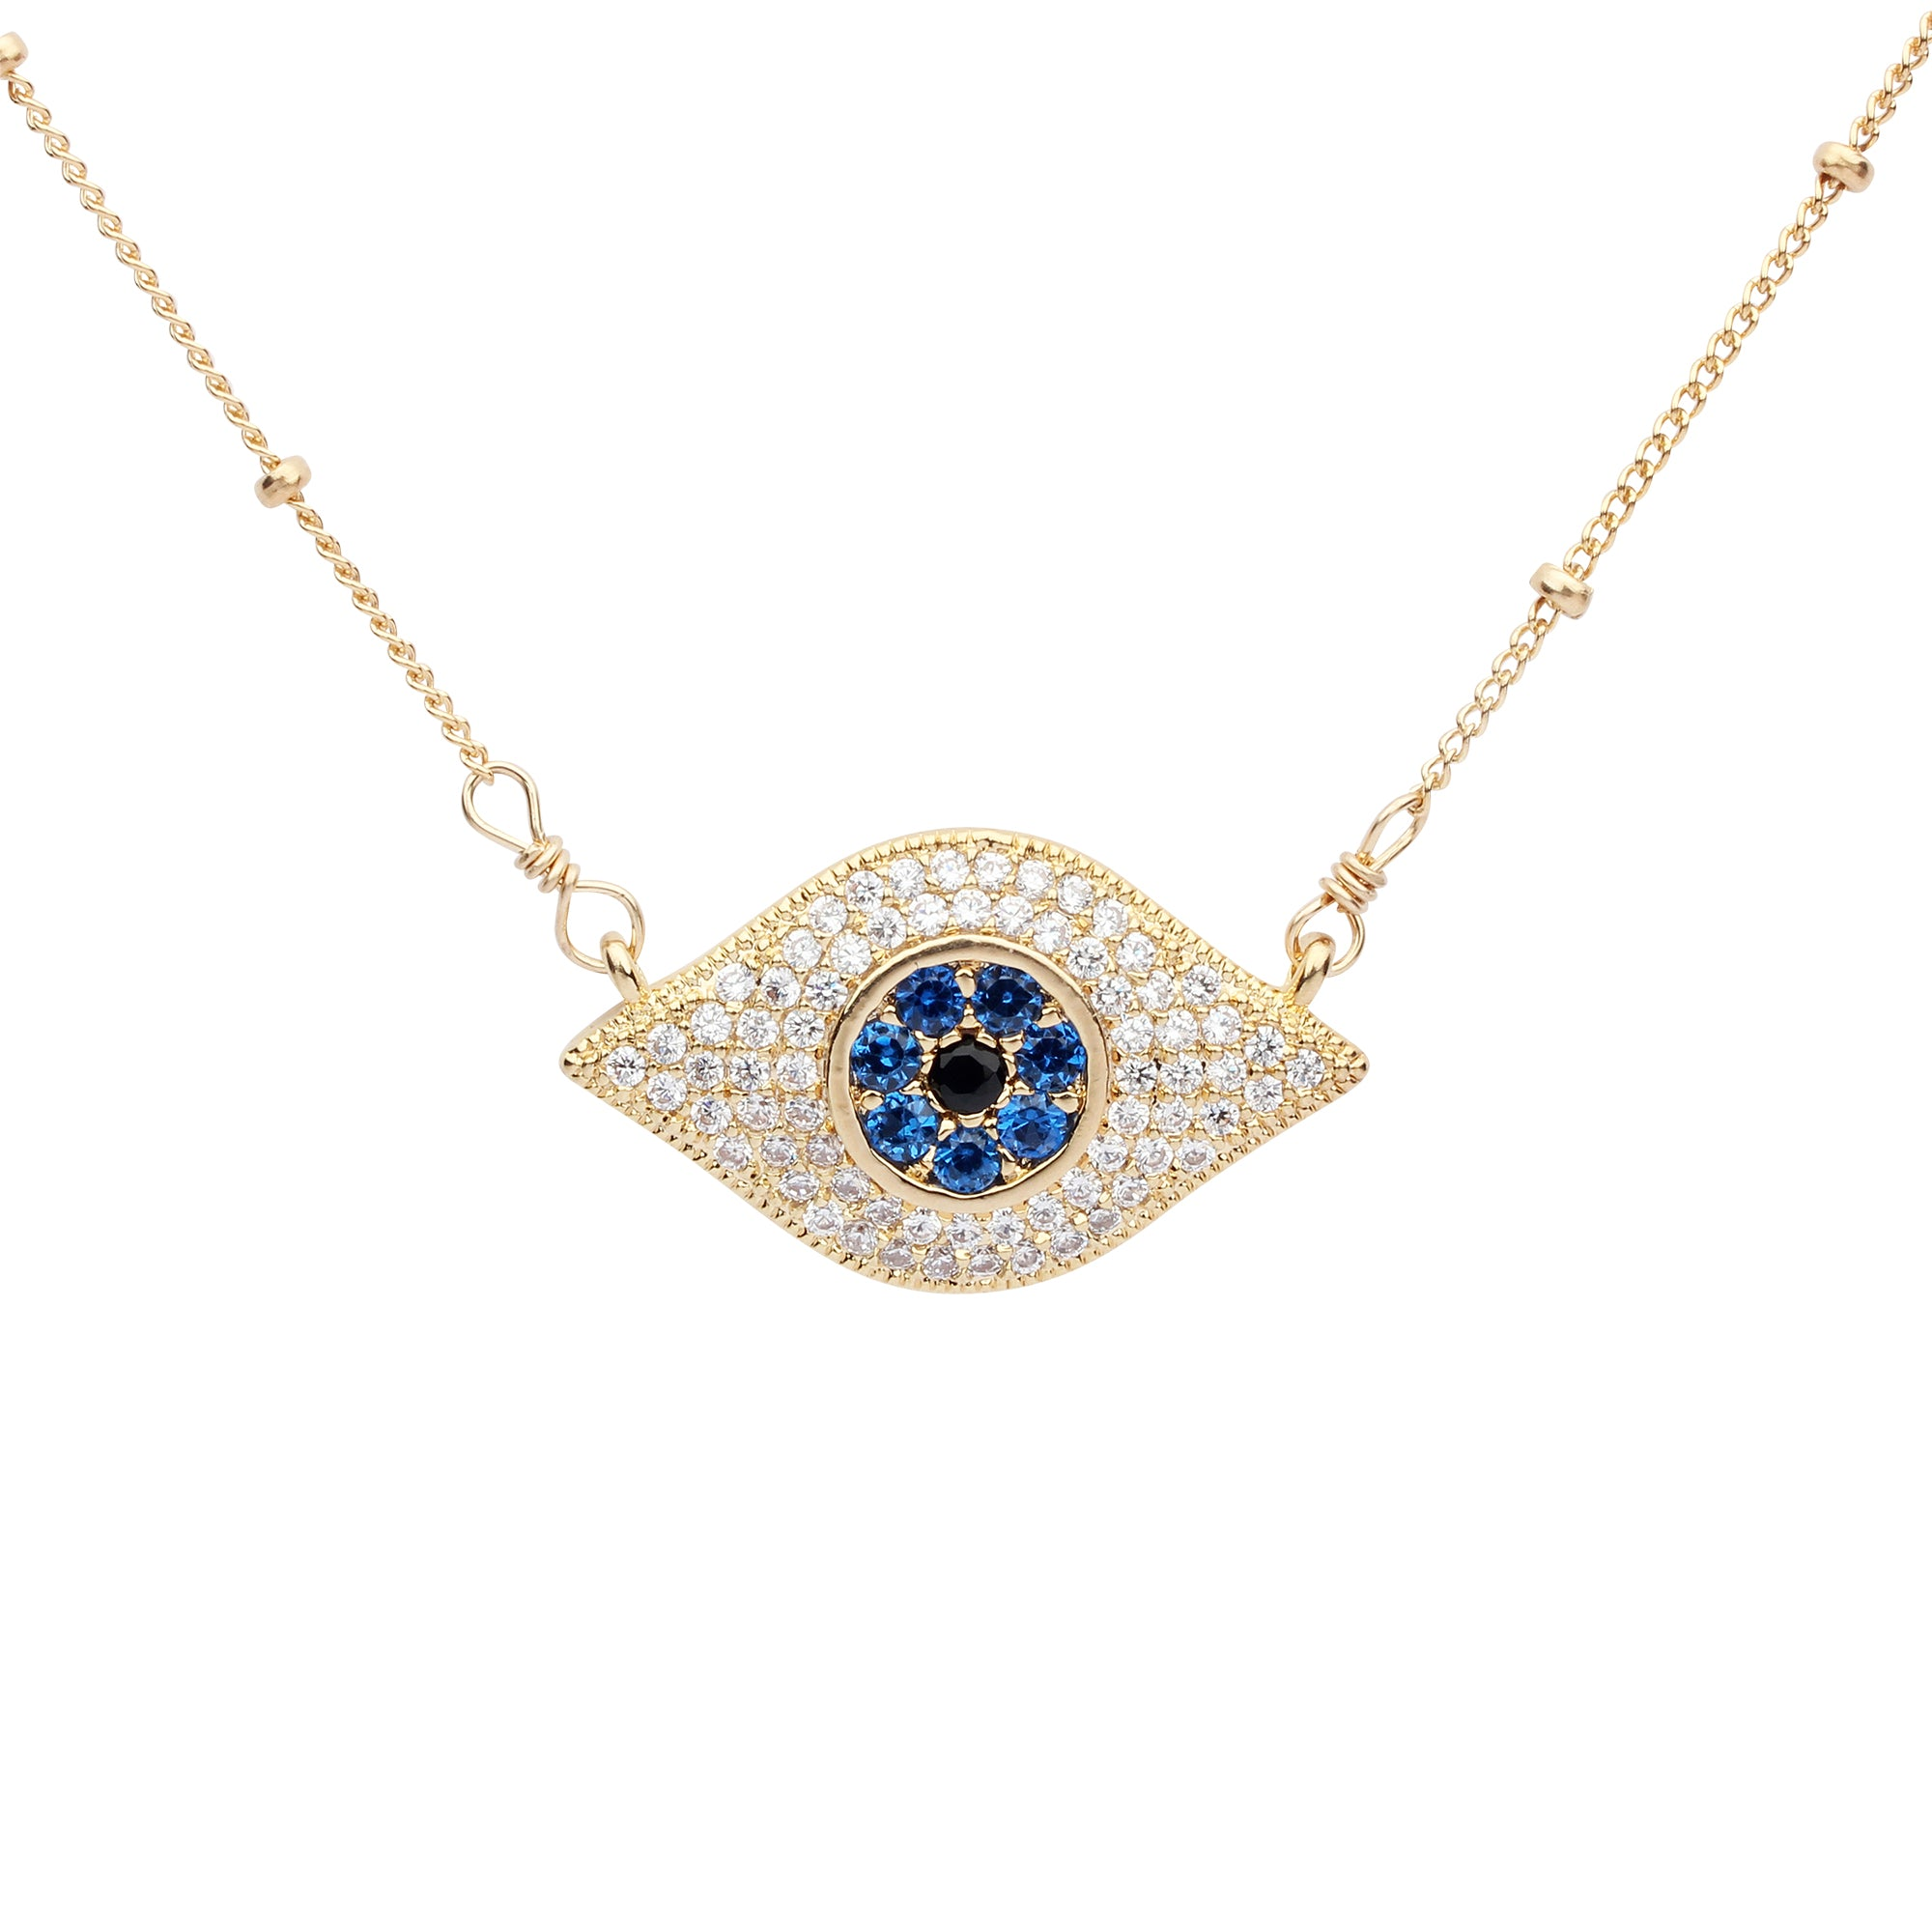 diamond evil gold necklace pretty disc pave eye ksvhs small reese witherspoon jewellery